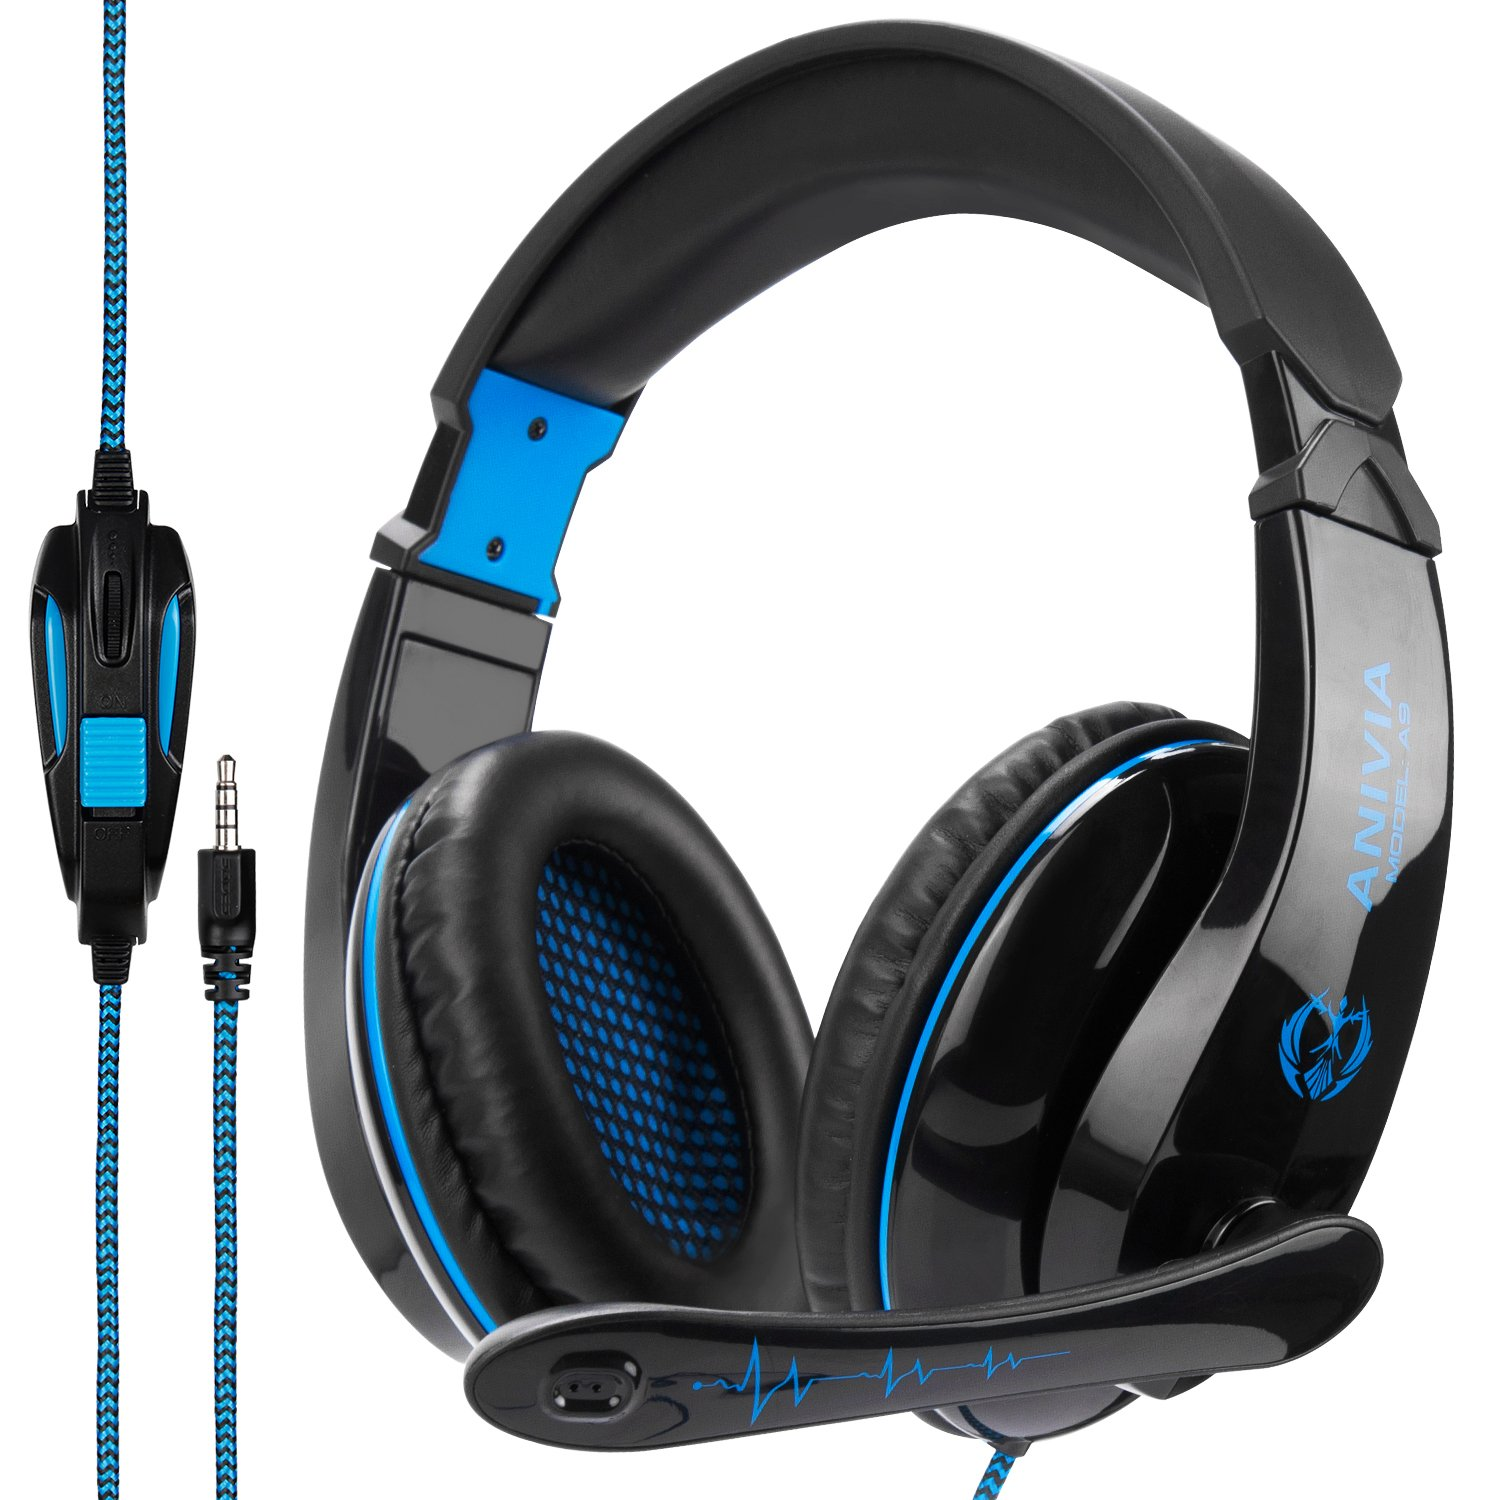 PS4 Gaming Headset Headphone,A9 Over Ear Setero PC Gaming Headset with Microphone,Noise Canceling 3.5mm Jack for PS4 New Xbox One/Mac/PC/Computer (Black Blue) by SADES